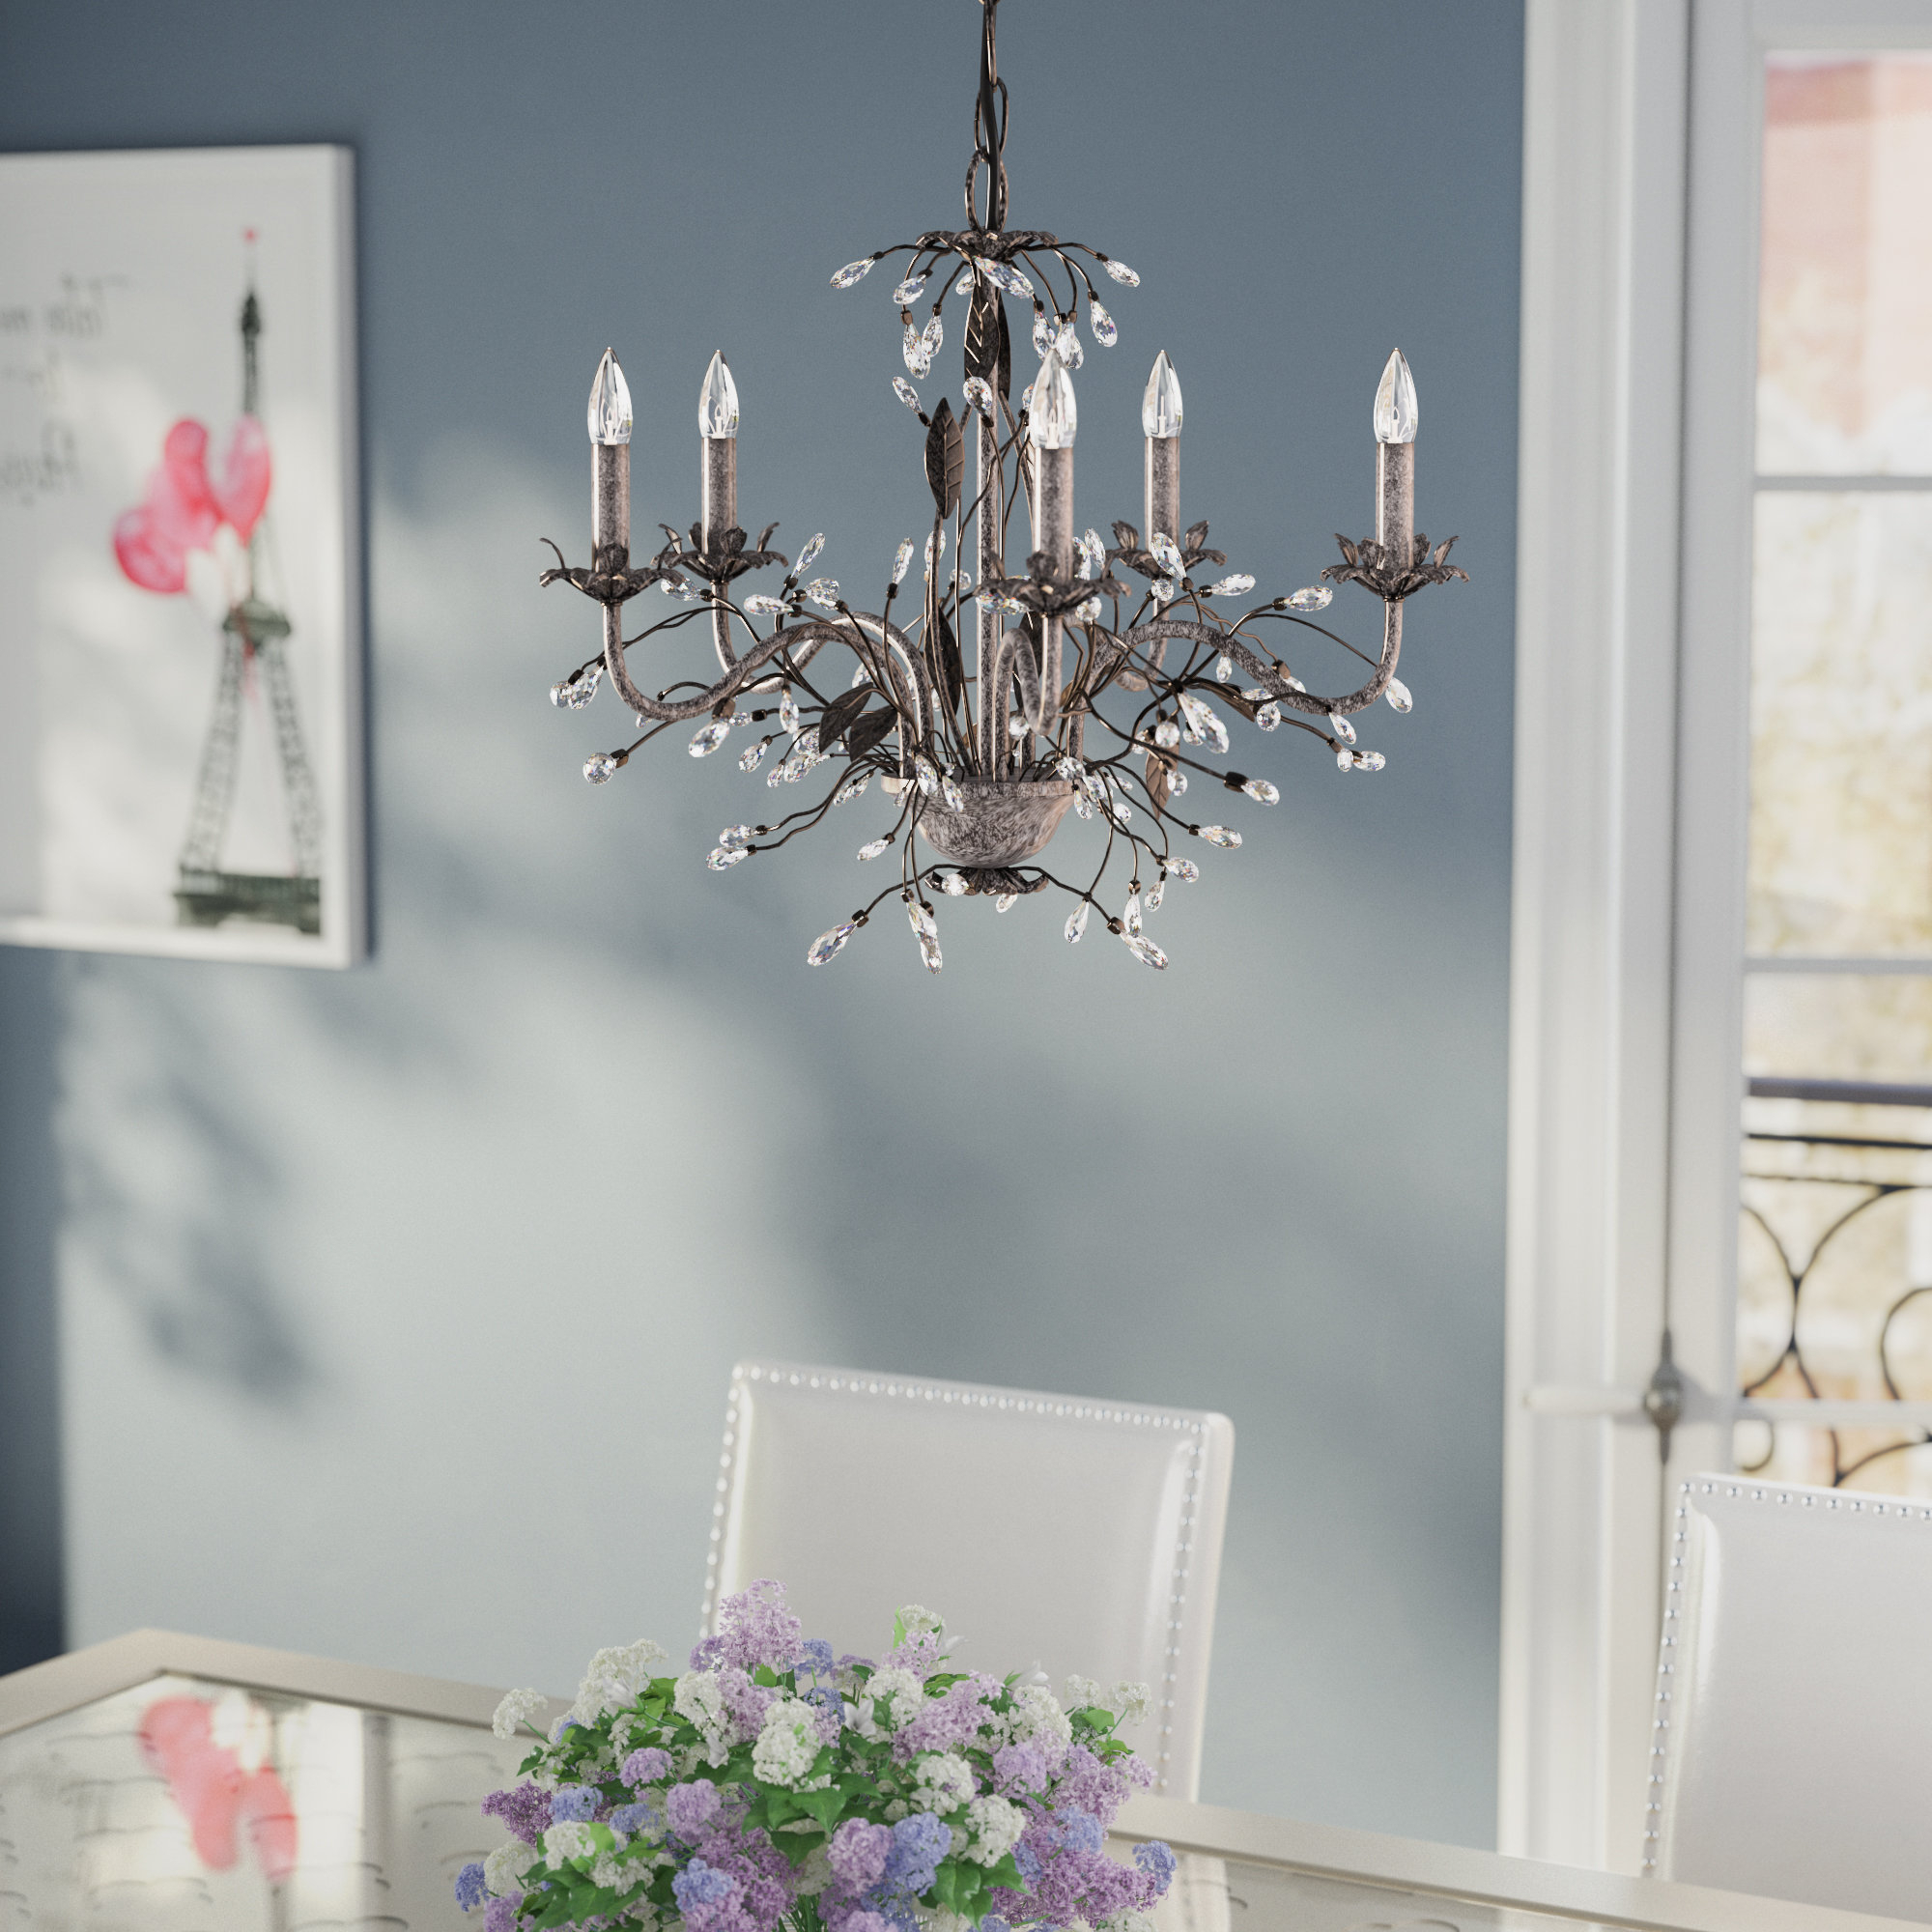 Blanchette 5 Light Candle Style Chandeliers Intended For Preferred Hesse 5 Light Candle Style Chandelier (View 7 of 20)